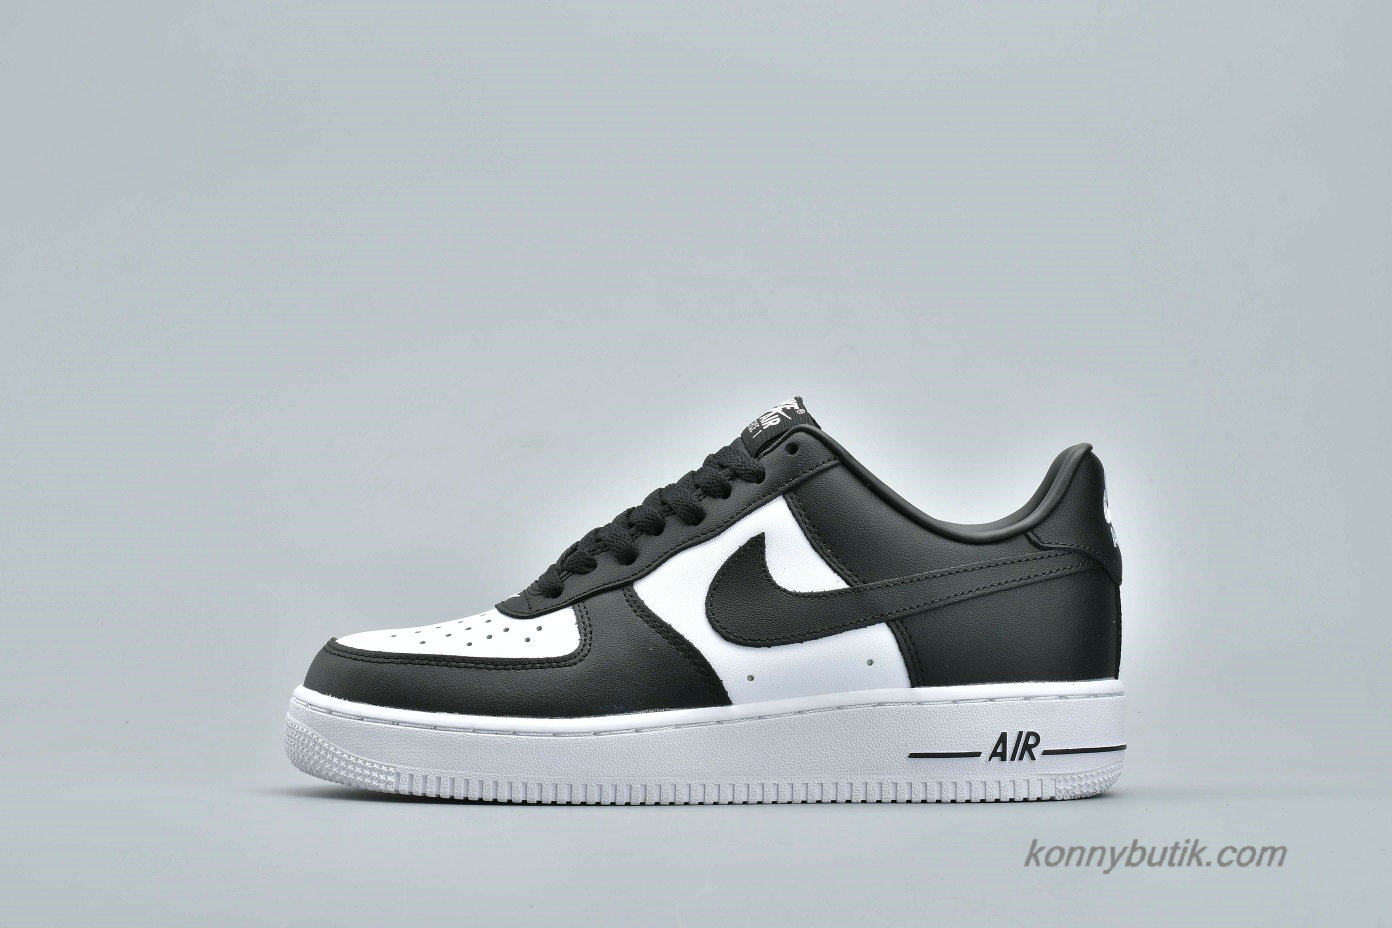 Nike Air Force 1 Low LO Unisex Sko Sort / Hvid (AQ4134-100)